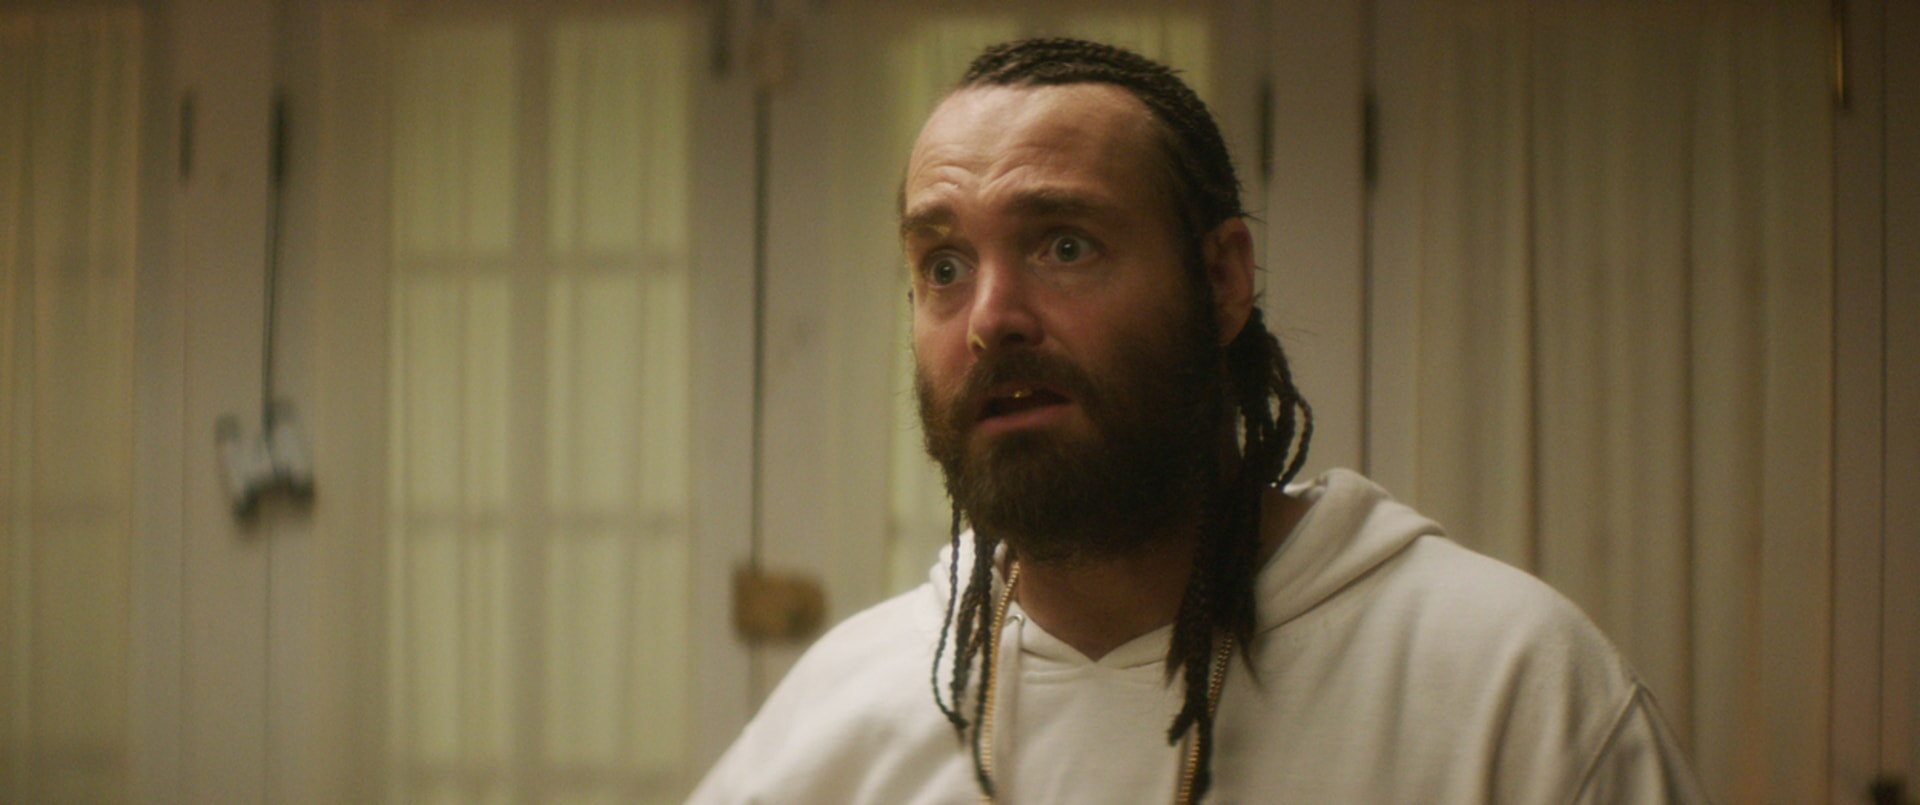 WILL FORTE as Hulka with braided hair and beard